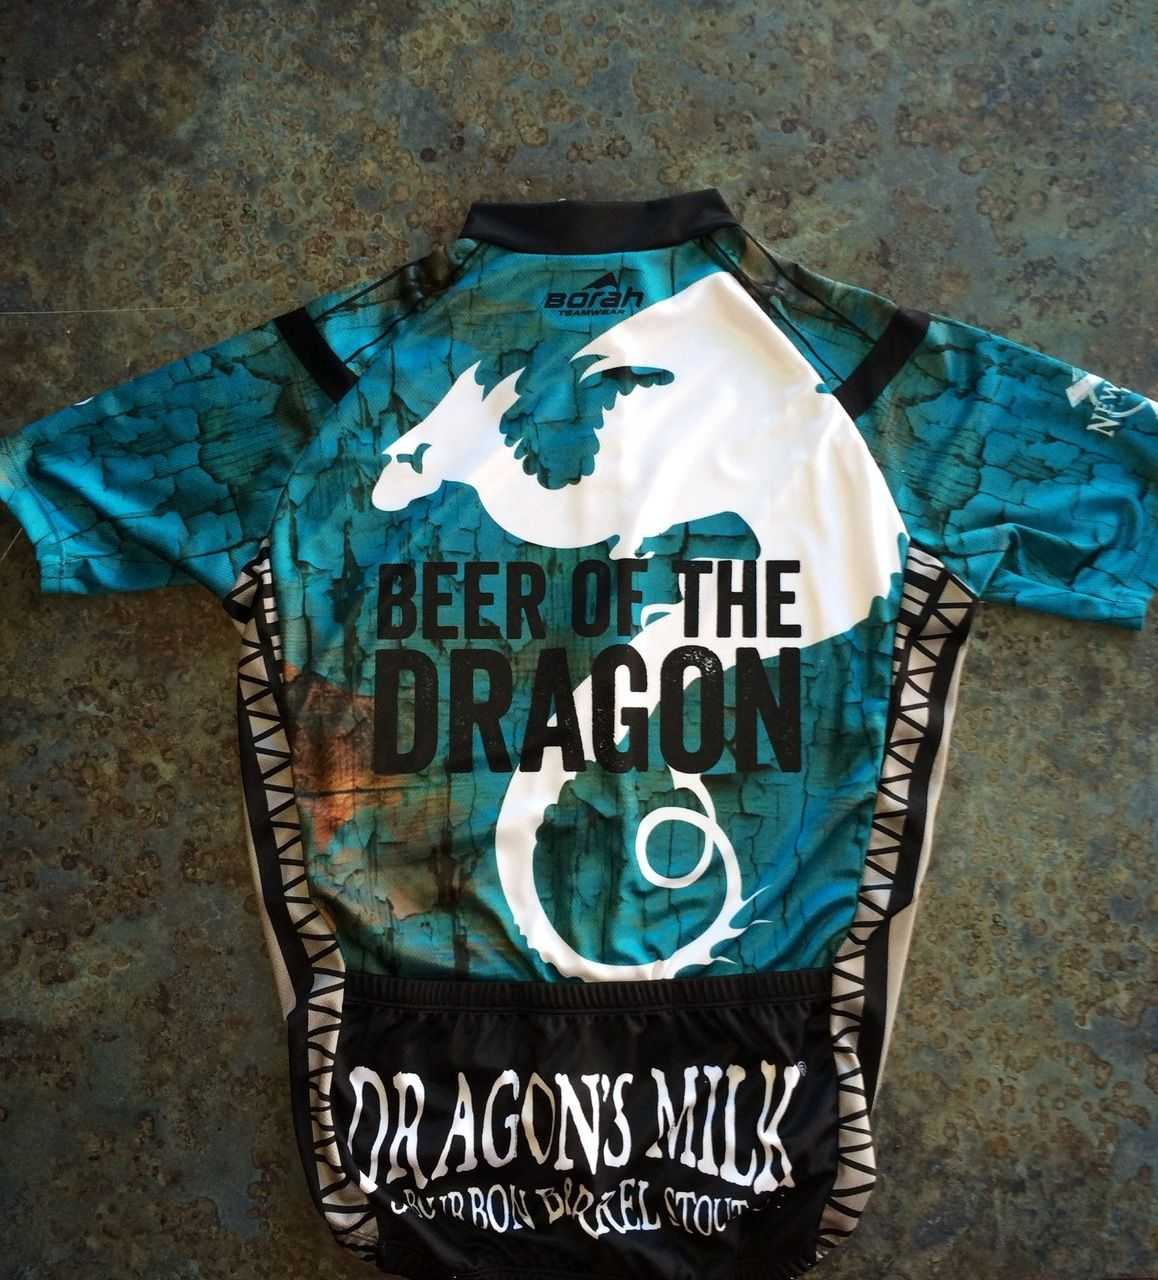 Beer of the Dragon Short Sleeve Bike Jersey - New Holland Brewing ... 26d902a3c